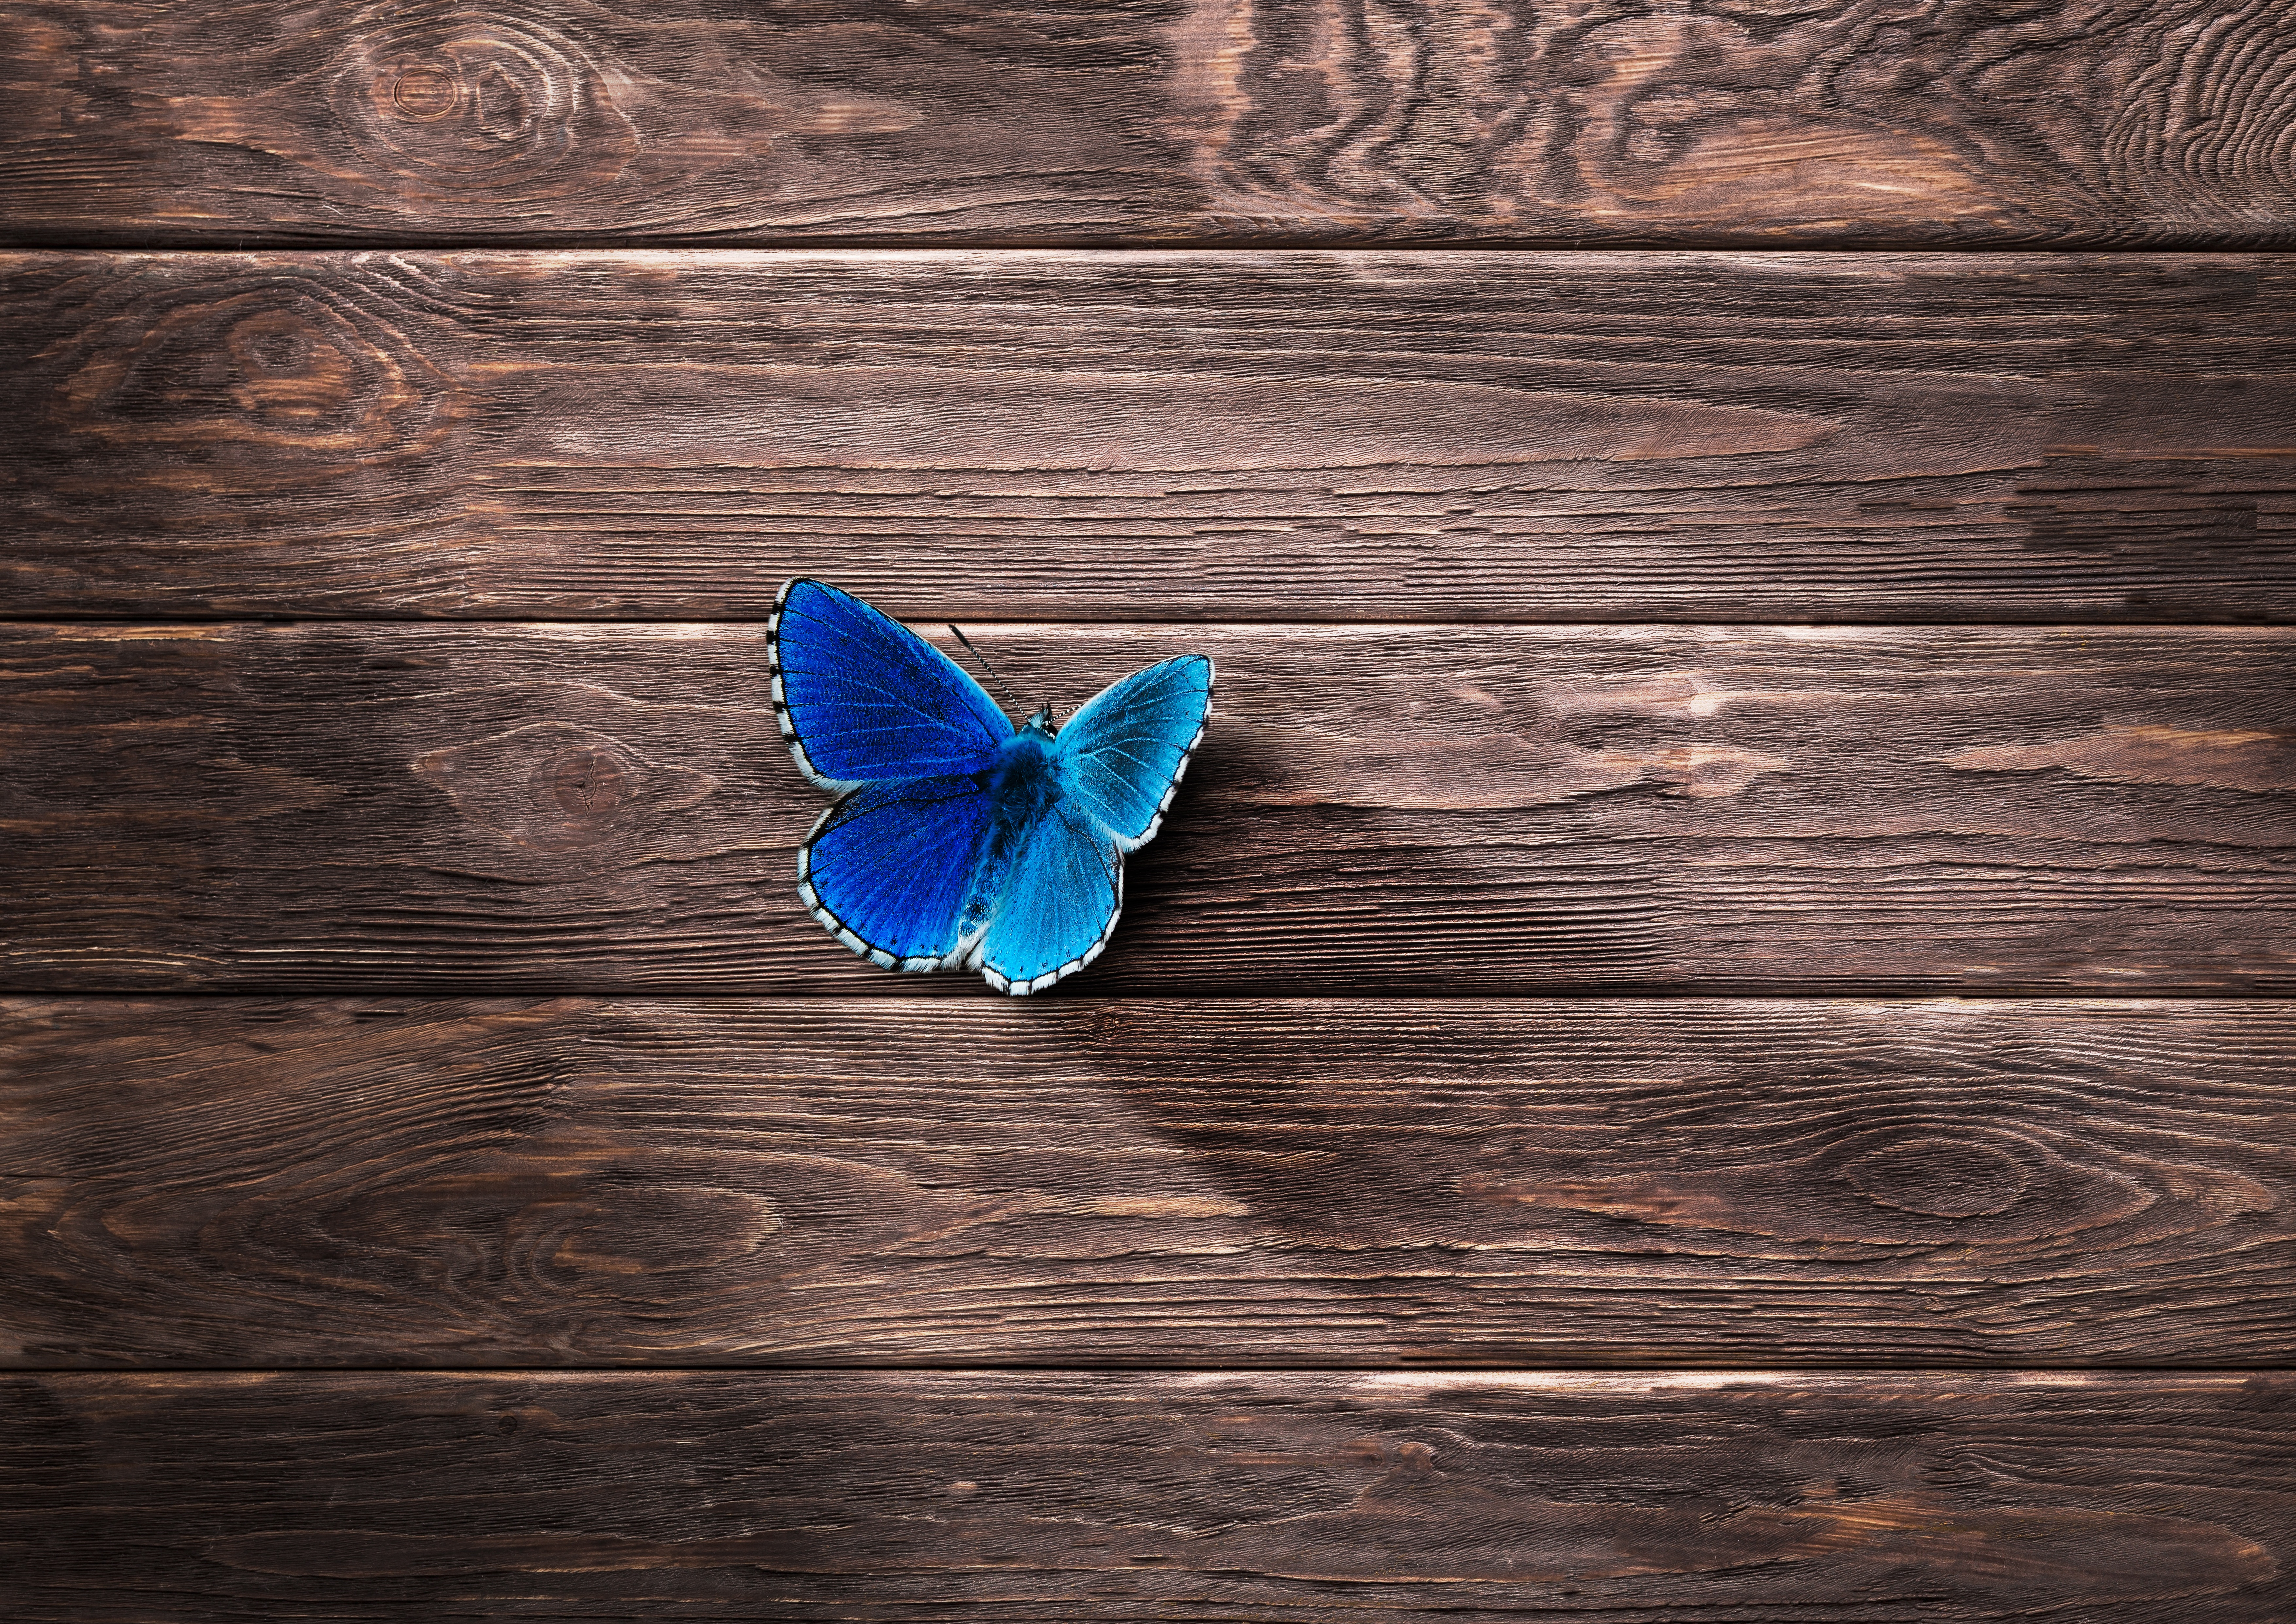 82208 download wallpaper Surface, Wood, Wooden, Minimalism, Butterfly screensavers and pictures for free